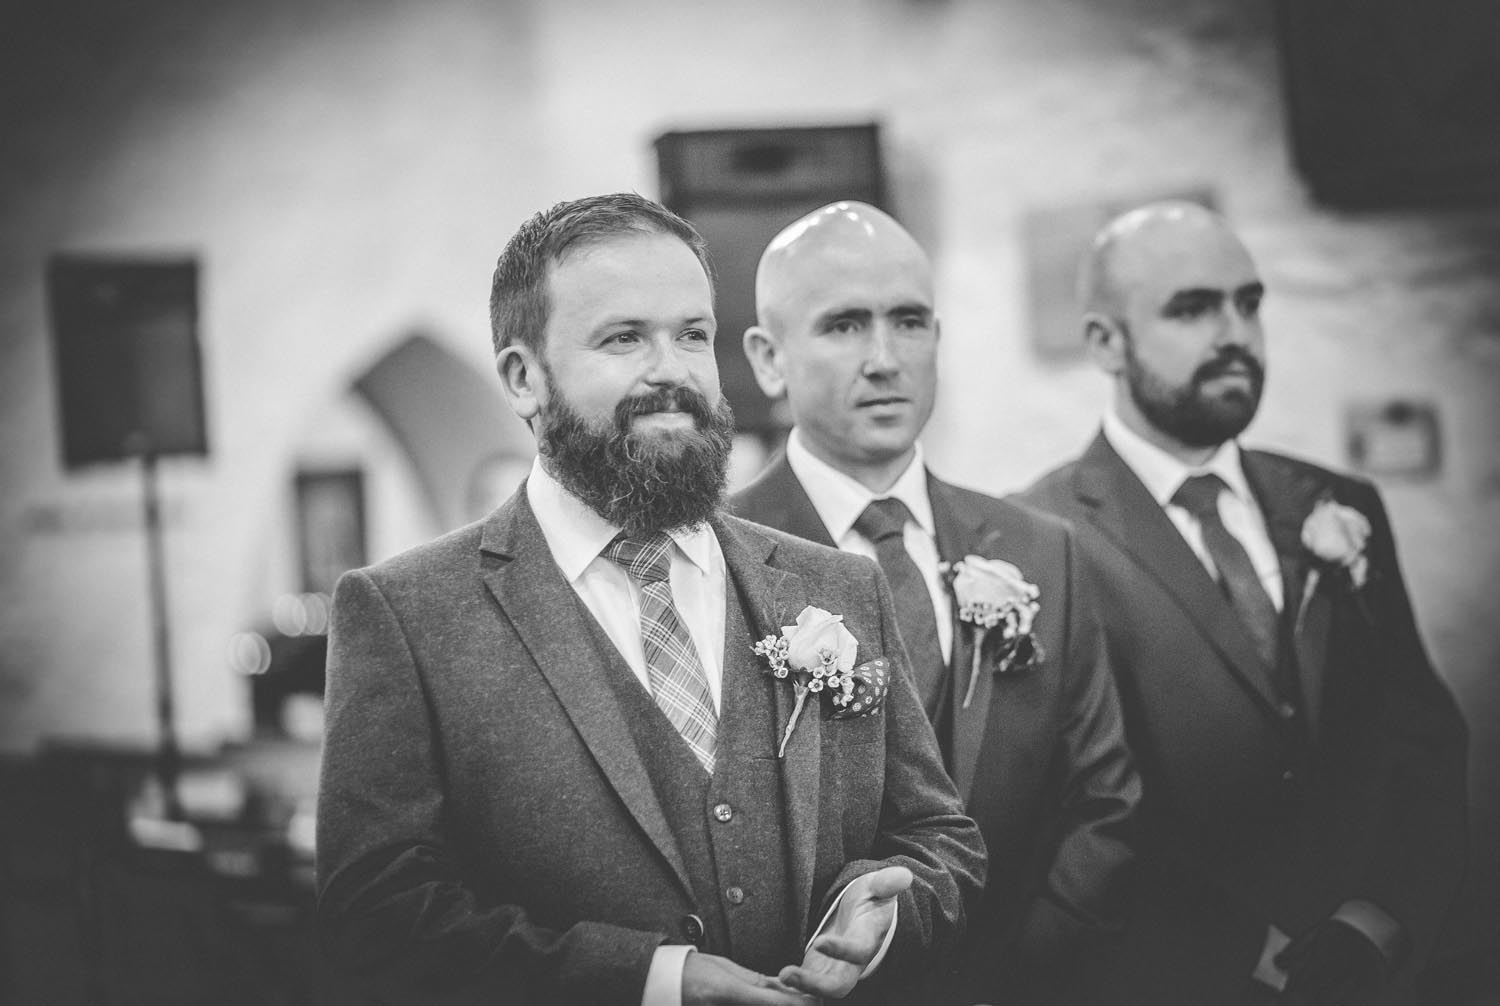 Step House wedding photographer Carlow Borris047.jpg